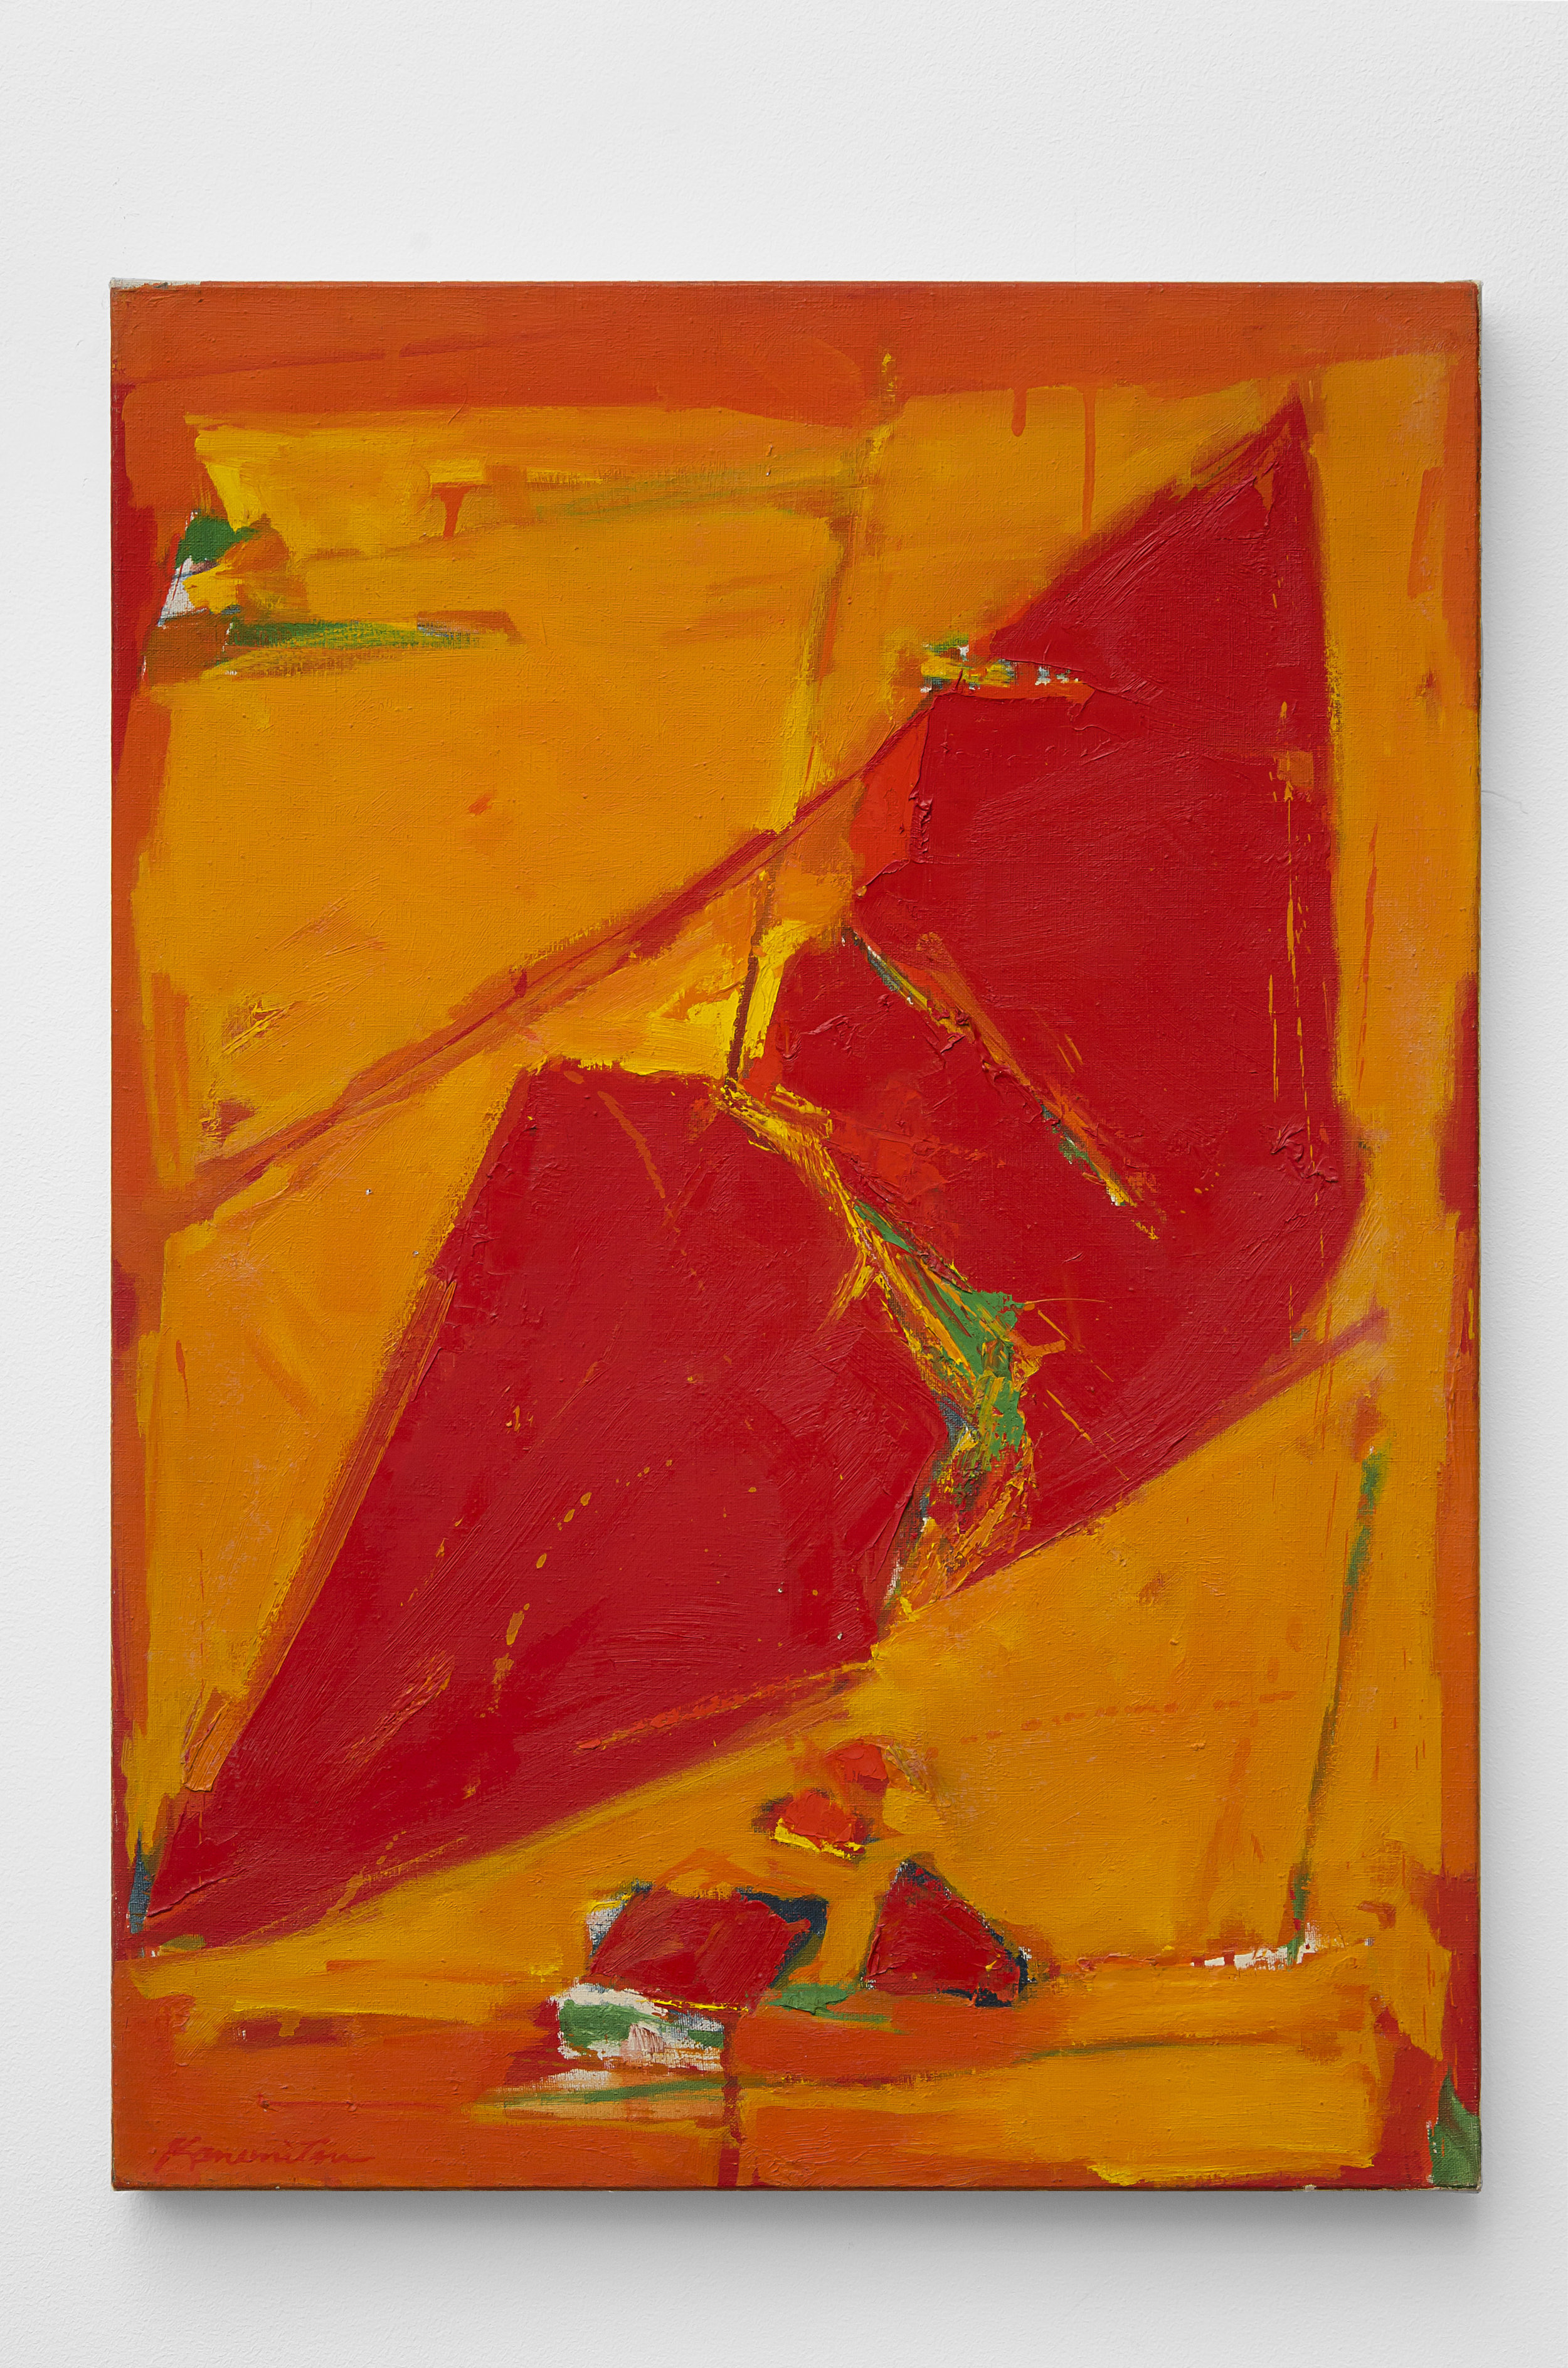 Untitled (Red) , 1960 acrylic on canvas 28 x 20 inches; 71.1 x 50.8